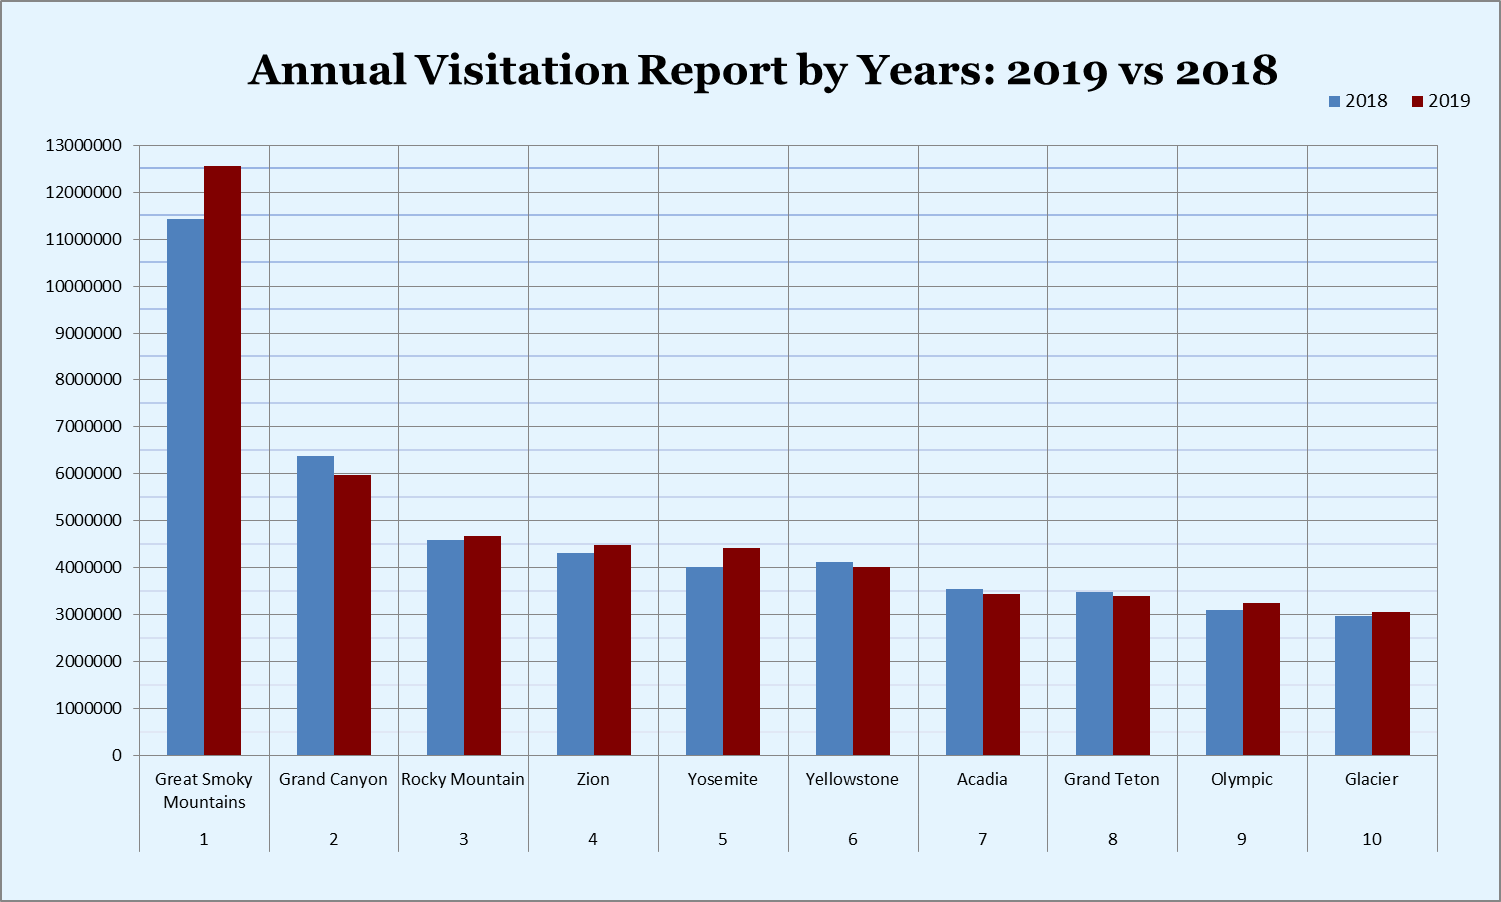 Annual Visitation Report By Years 2018-2019